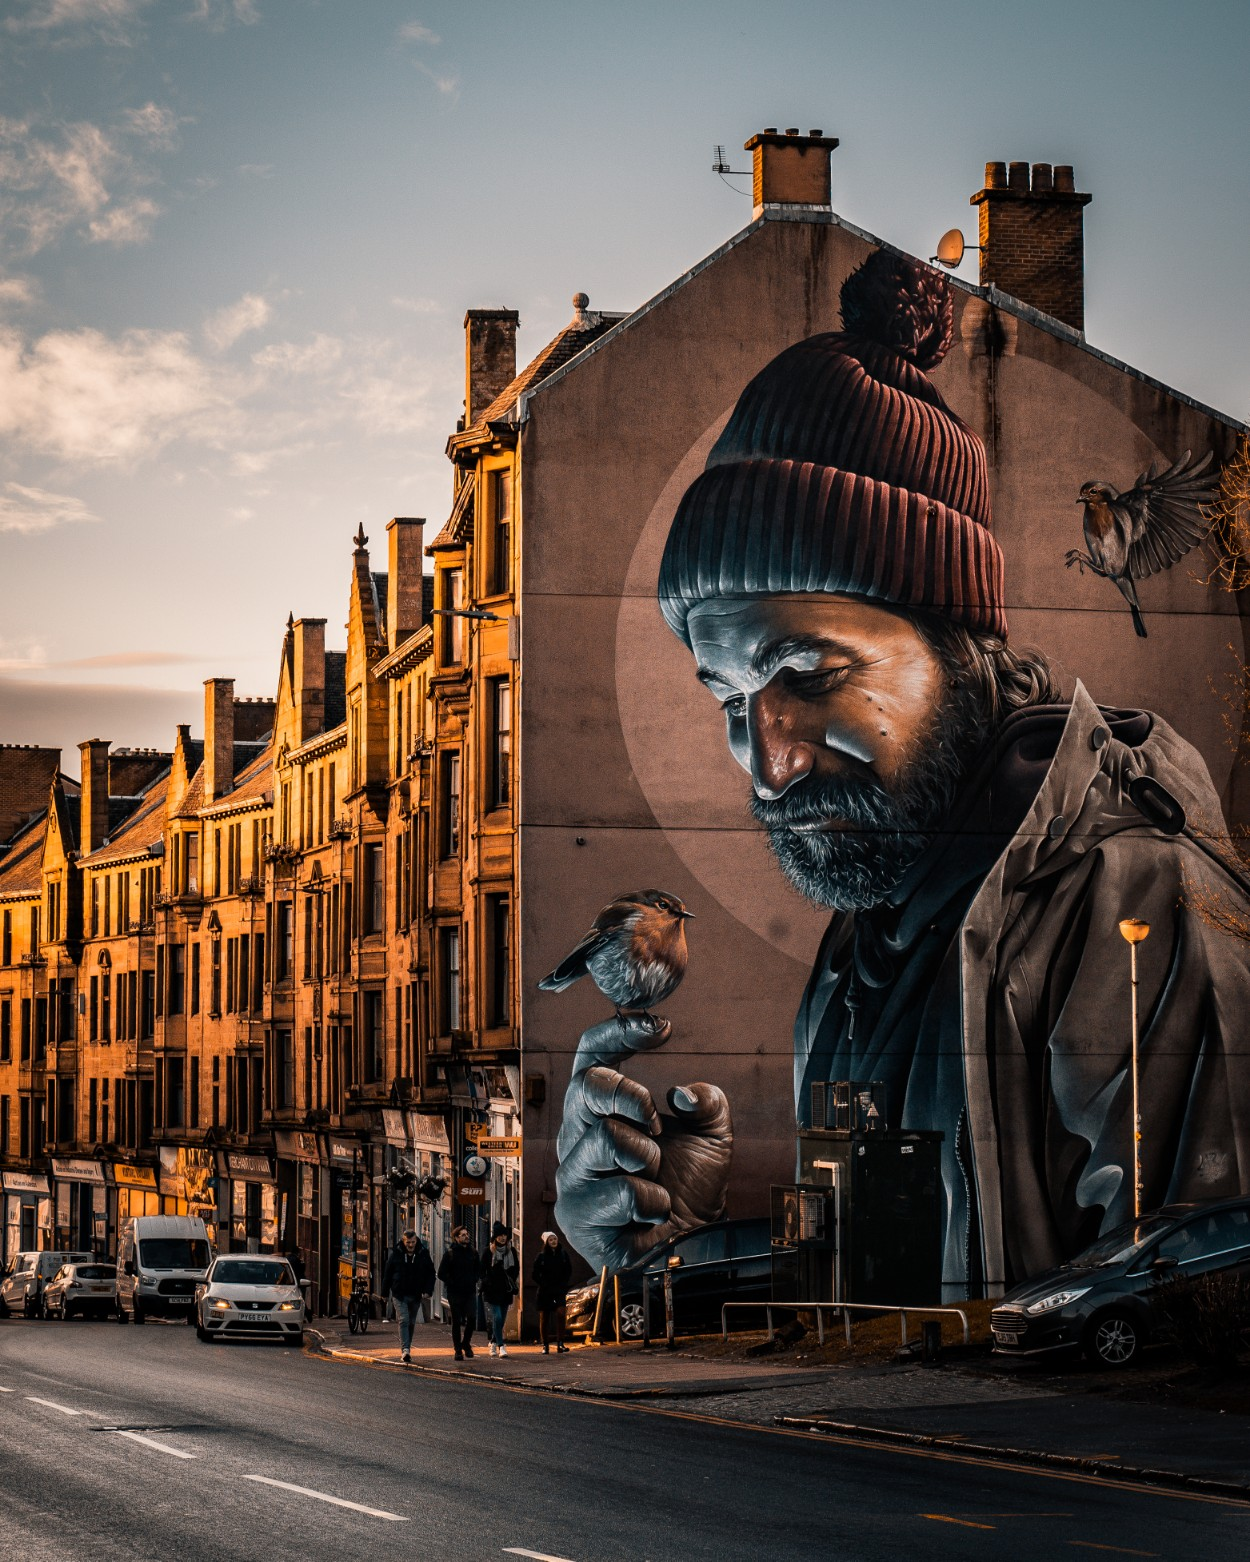 Amazing street art by Smug in Glasgow